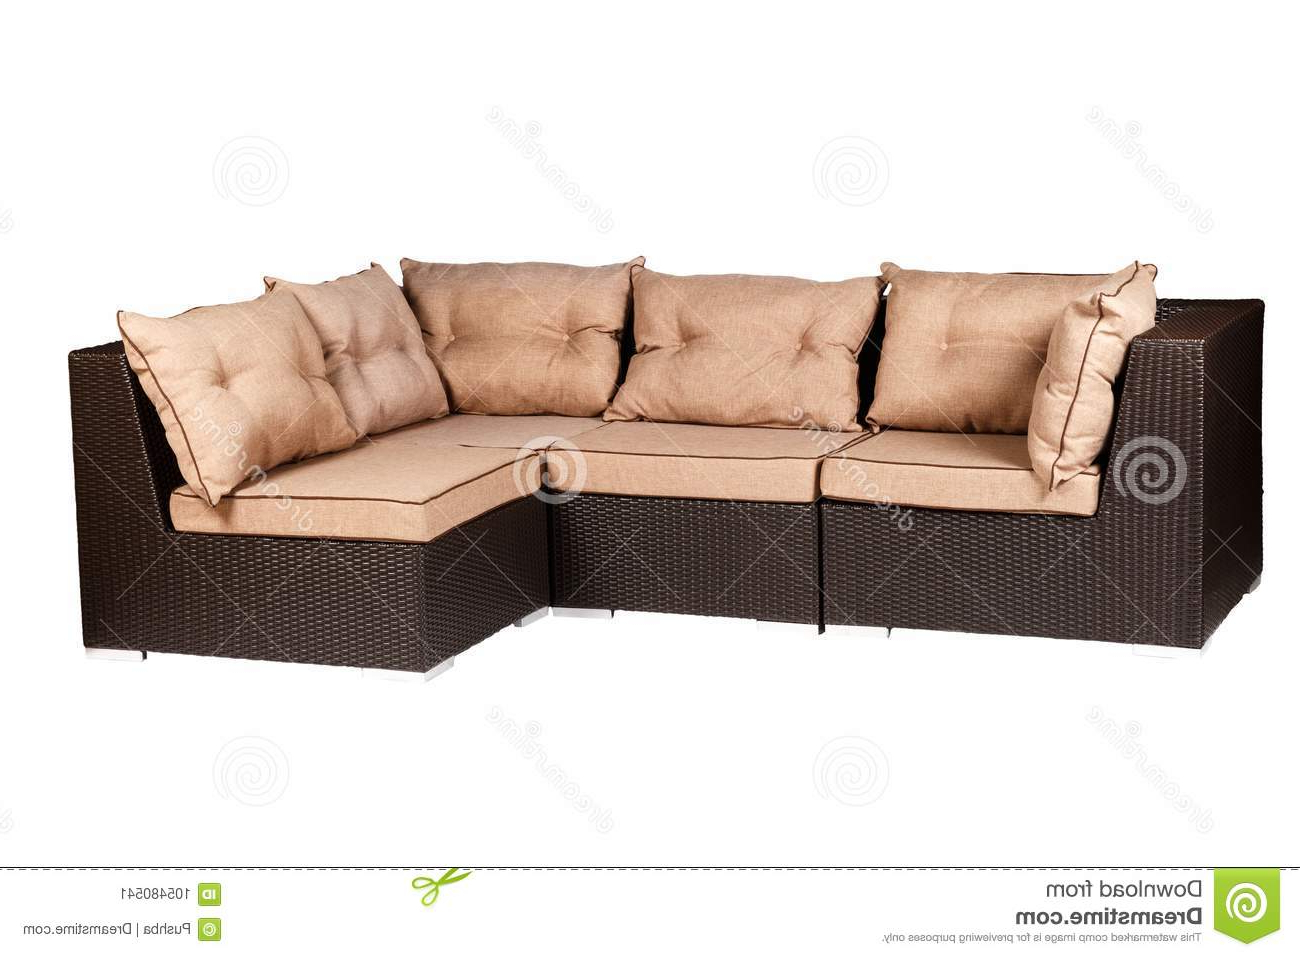 Most Popular Wicker Sofa With Linen Cushions In Sand Color Stock Image Pertaining To Setoril Modern Sectional Sofa Swith Chaise Woven Linen (View 4 of 20)